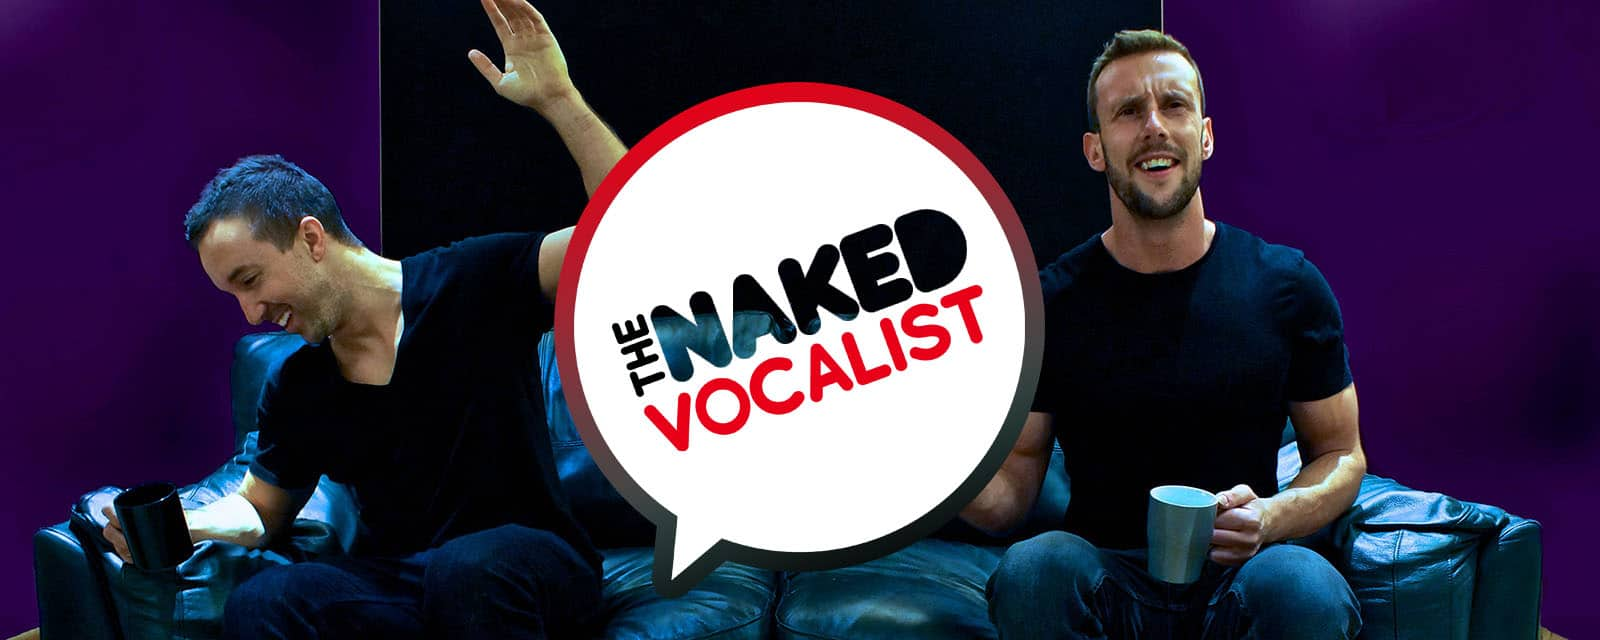 Learn how to sing better with The Naked Vocalist podcast